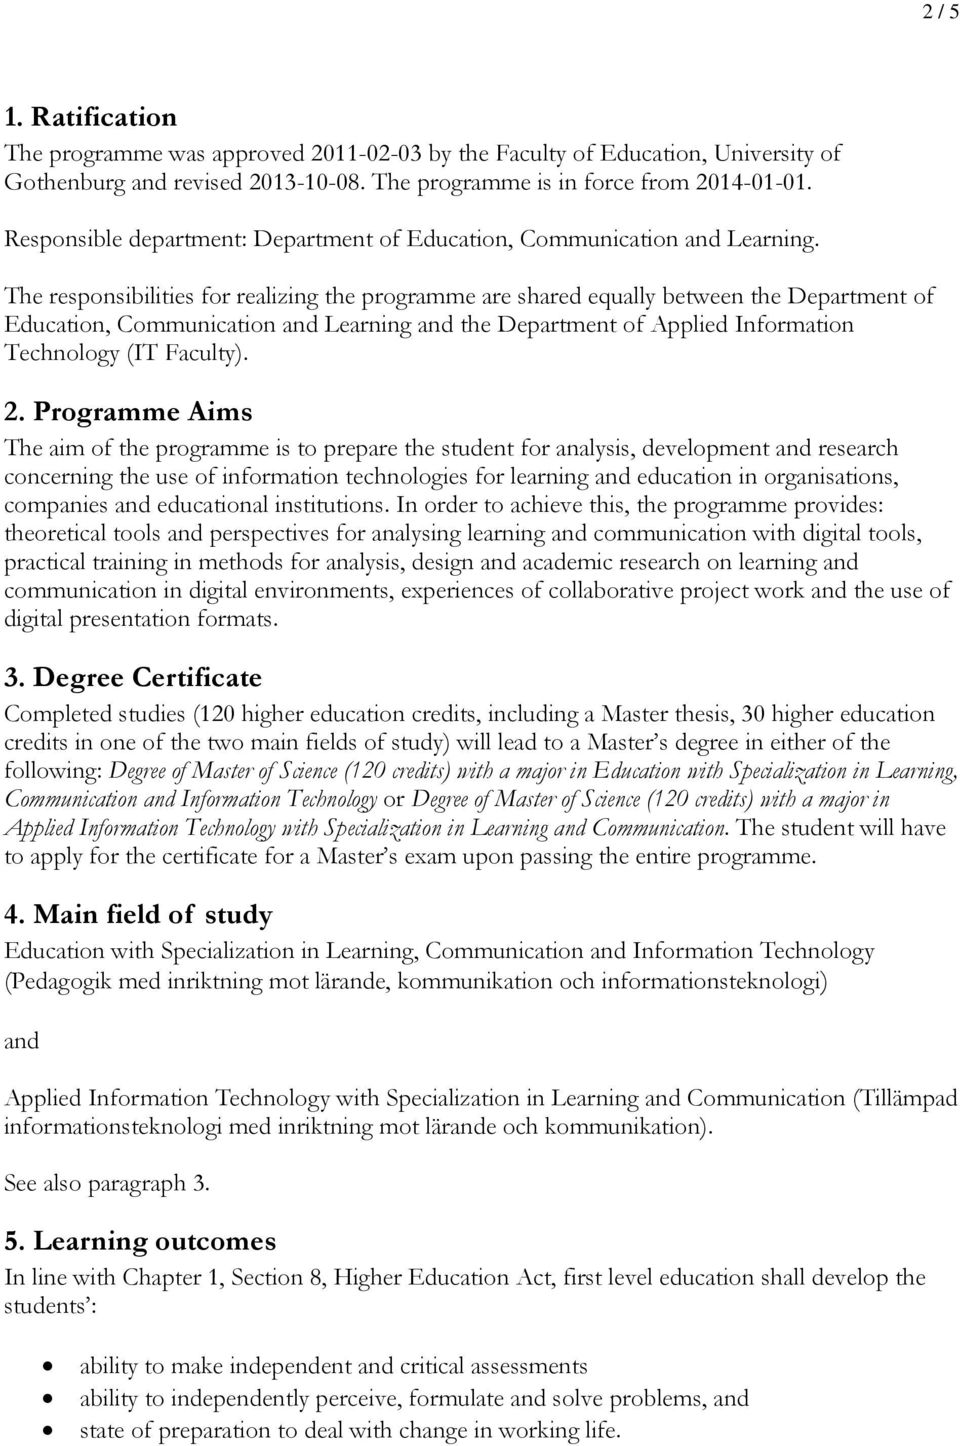 The responsibilities for realizing the programme are shared equally between the Department of Education, Communication and Learning and the Department of Applied Information Technology (IT Faculty).